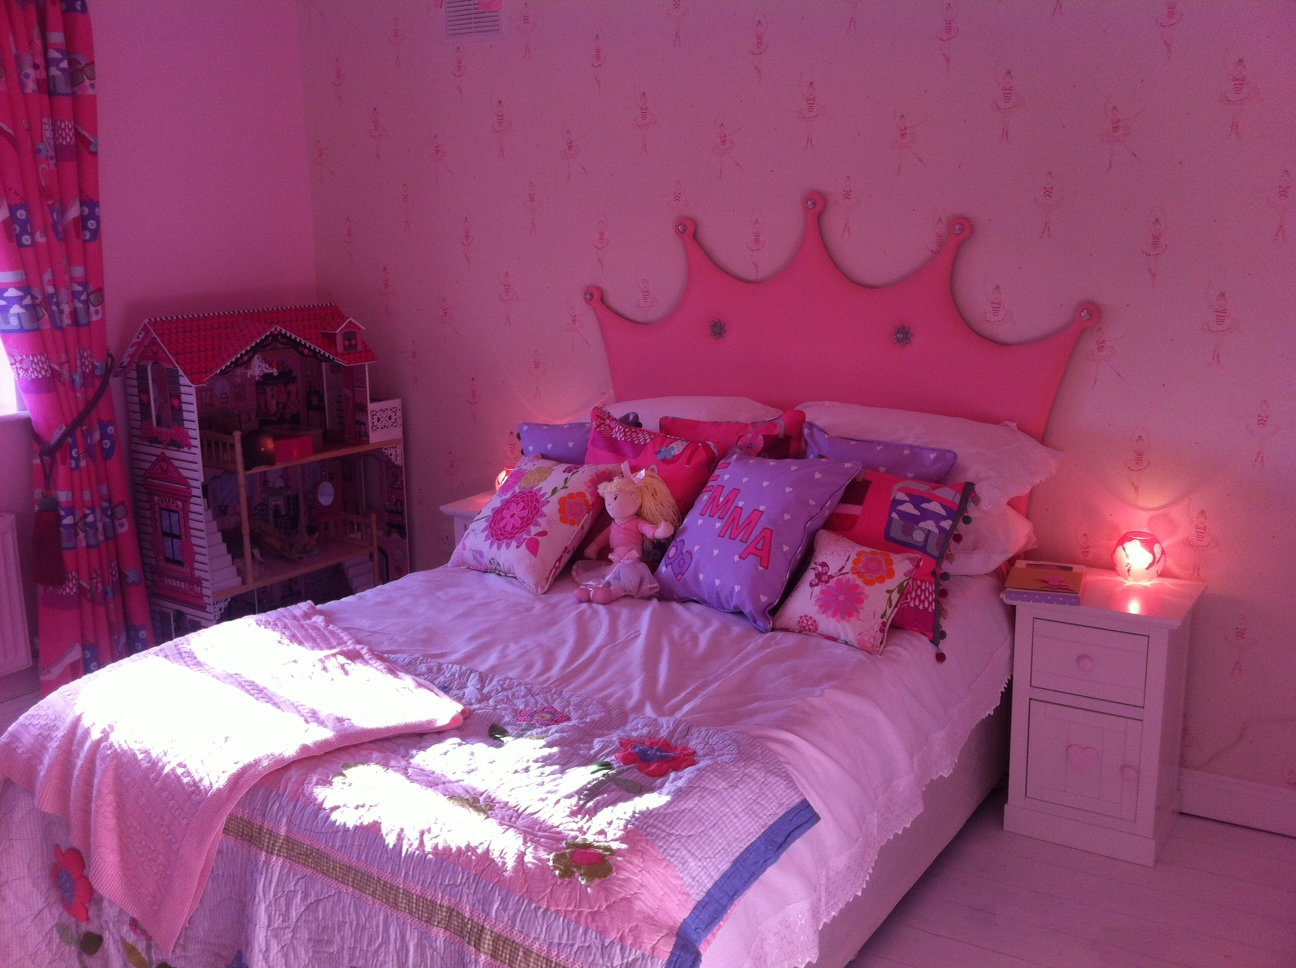 Disney Princess Bedroom Furniture 27 Princess Bed Ideas You Might Want To Keep For Yourself